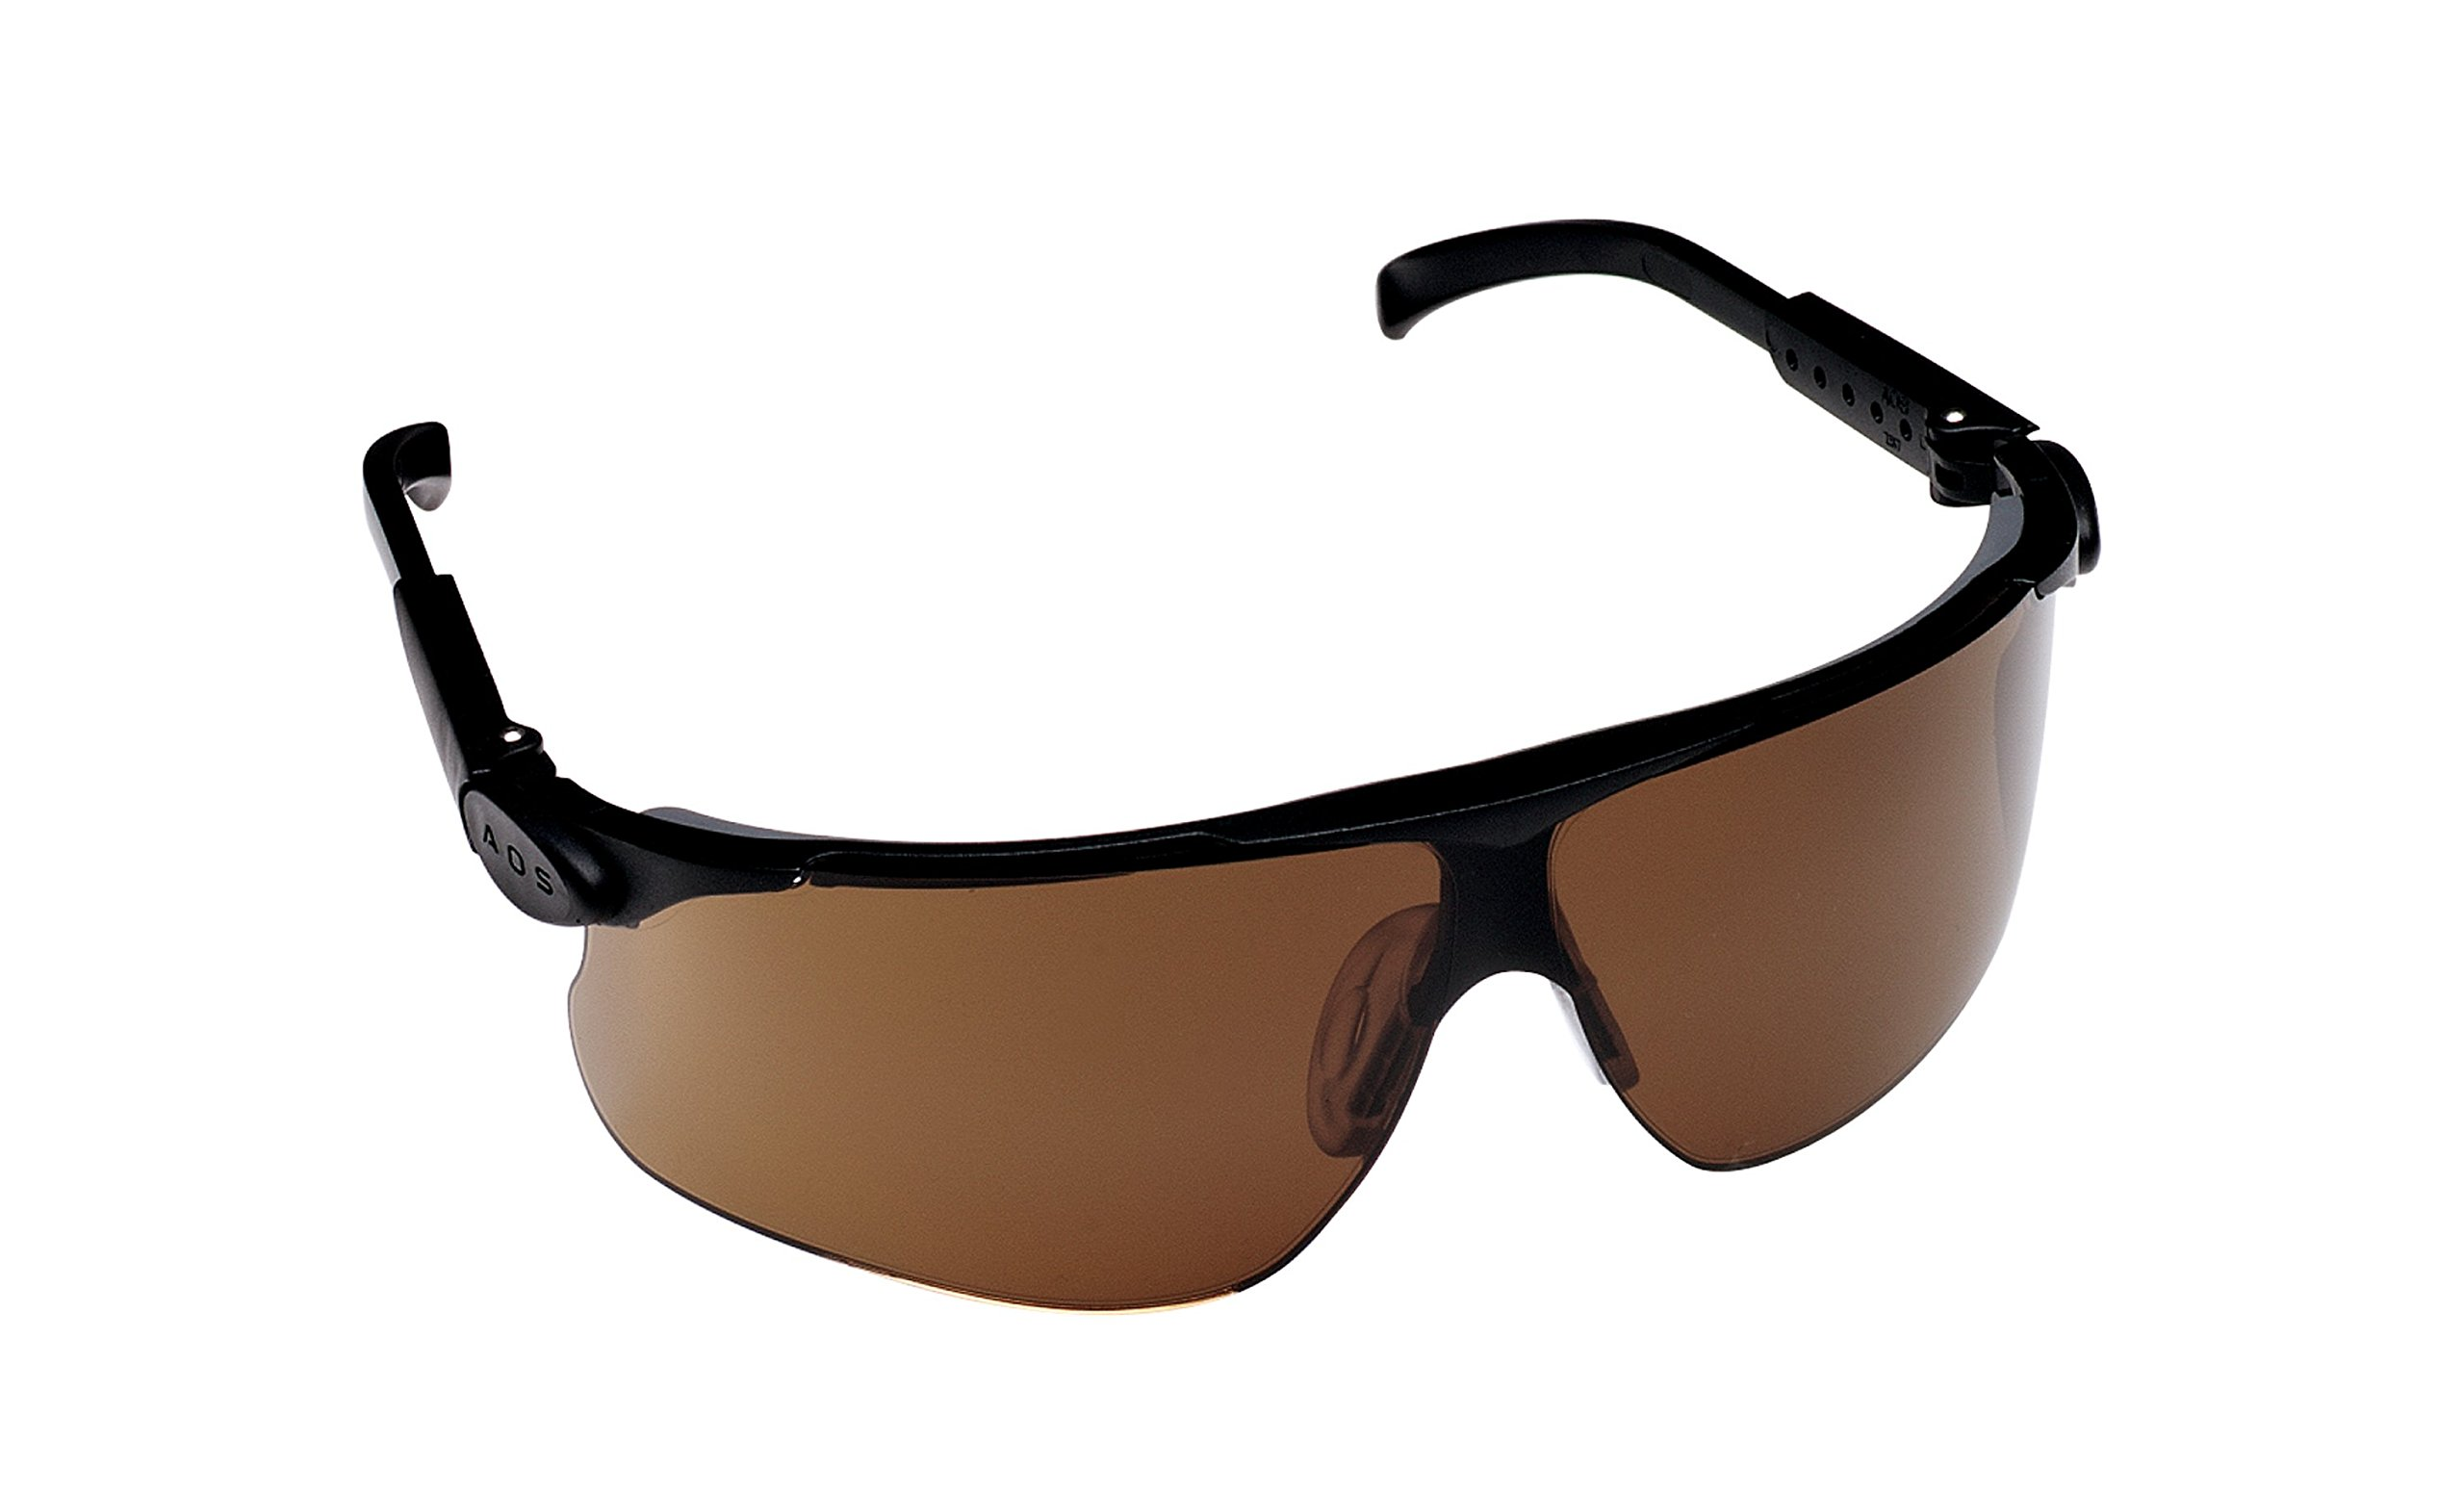 3M 13251 Maxim Adjustable Temple Safety Glasses, Black Frame, Bronze Lens